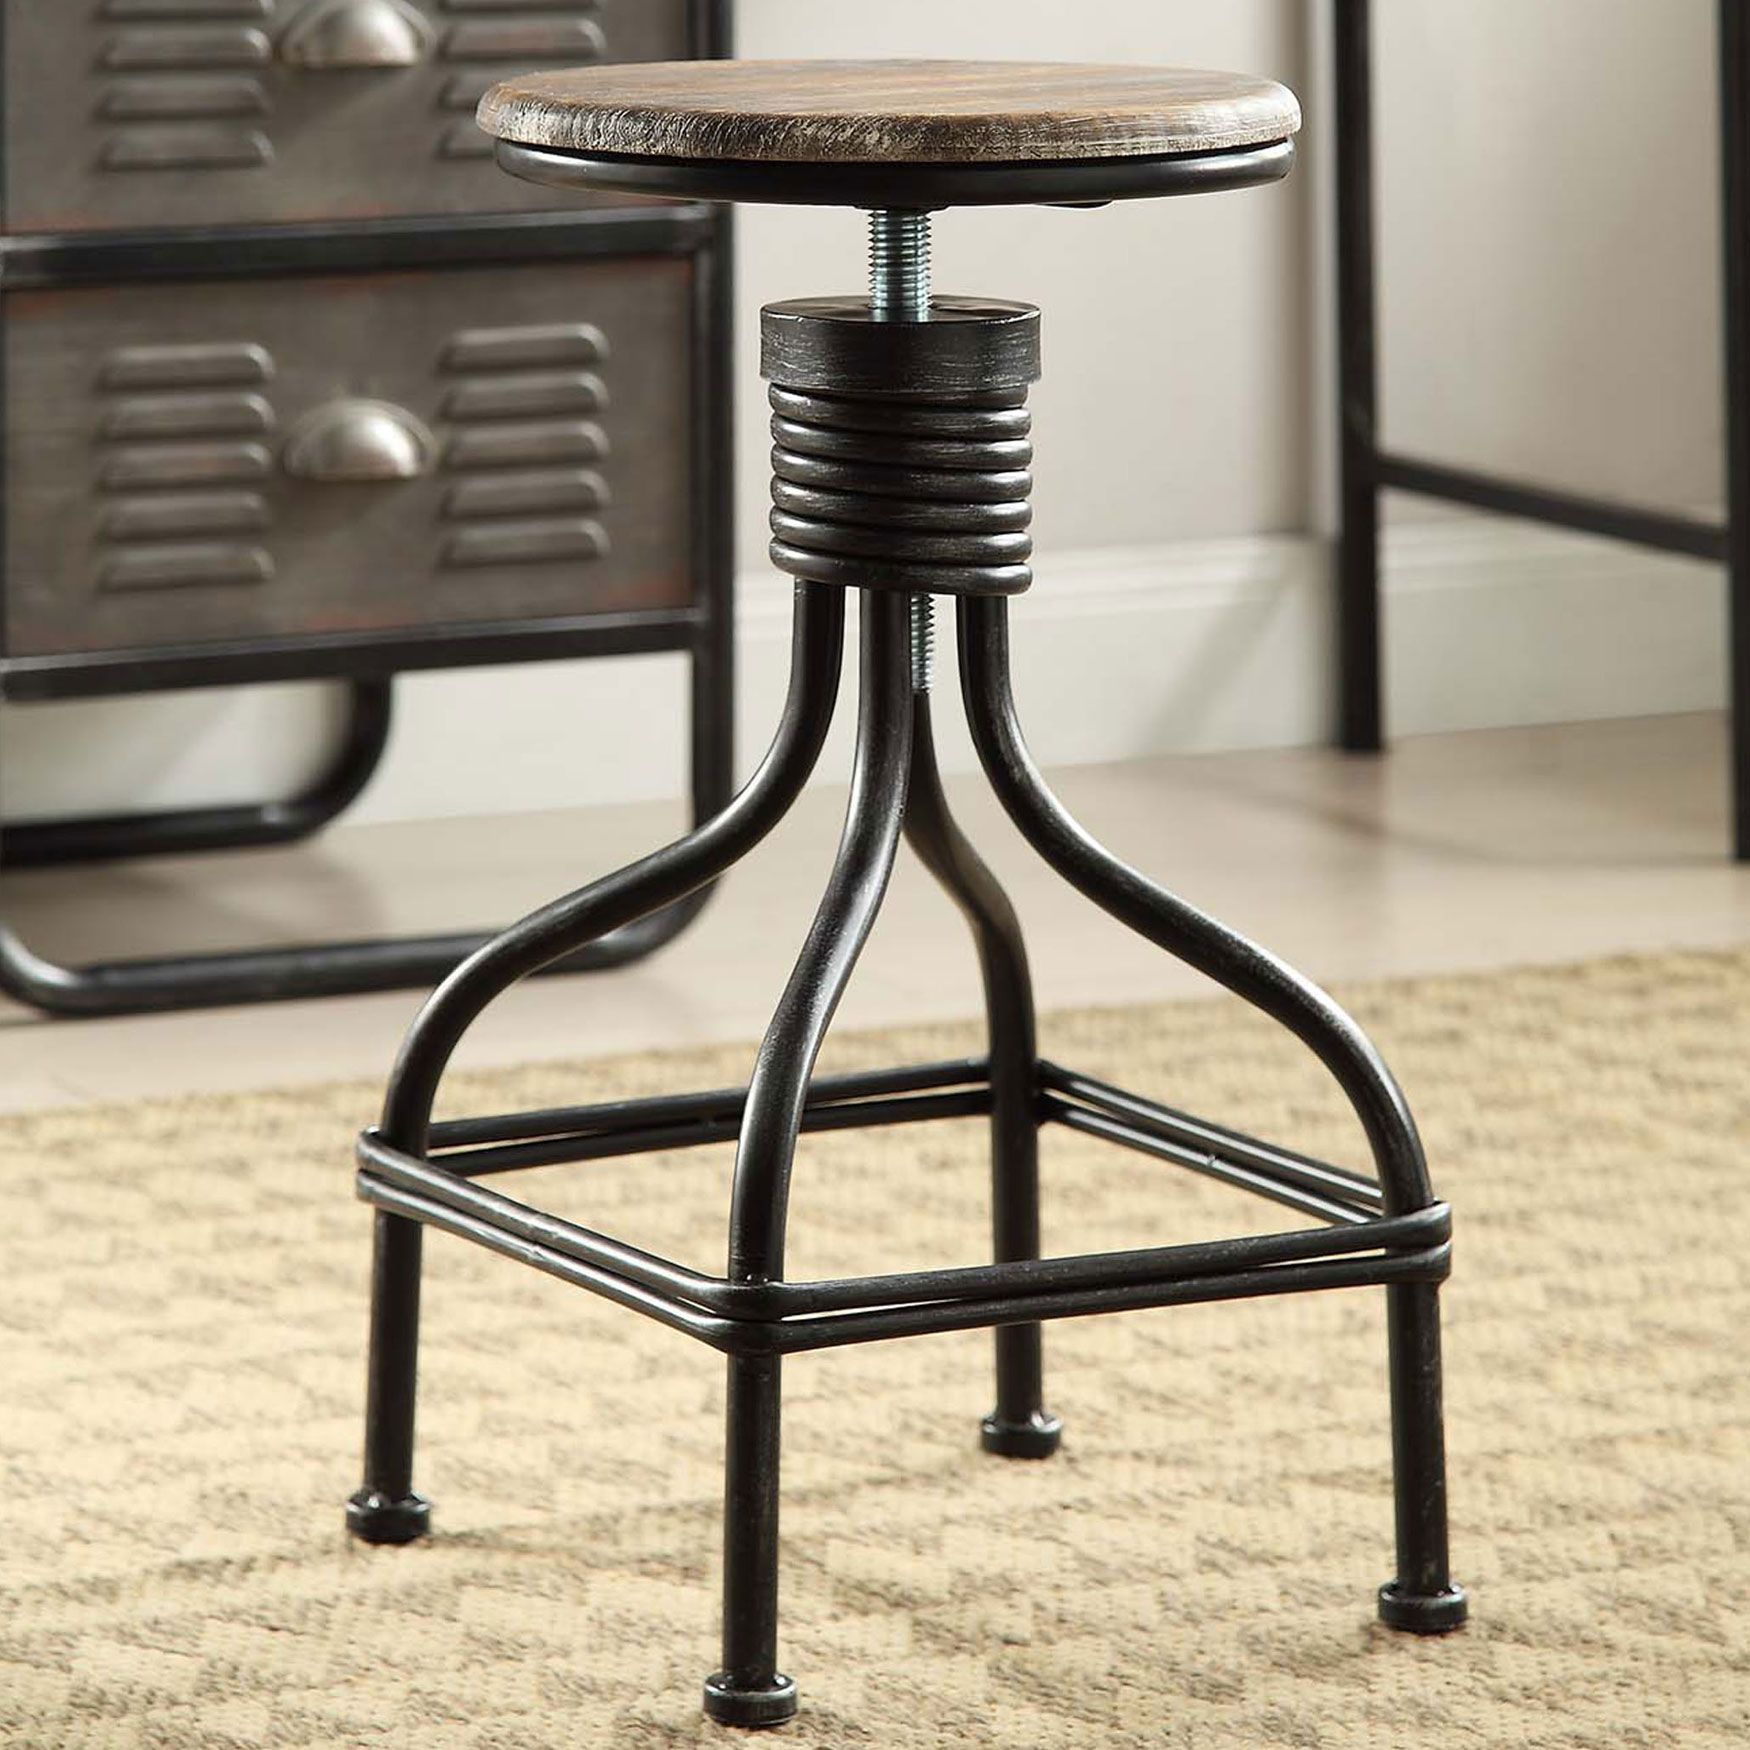 Adjustable Swivel Stool, BLACK GRAY